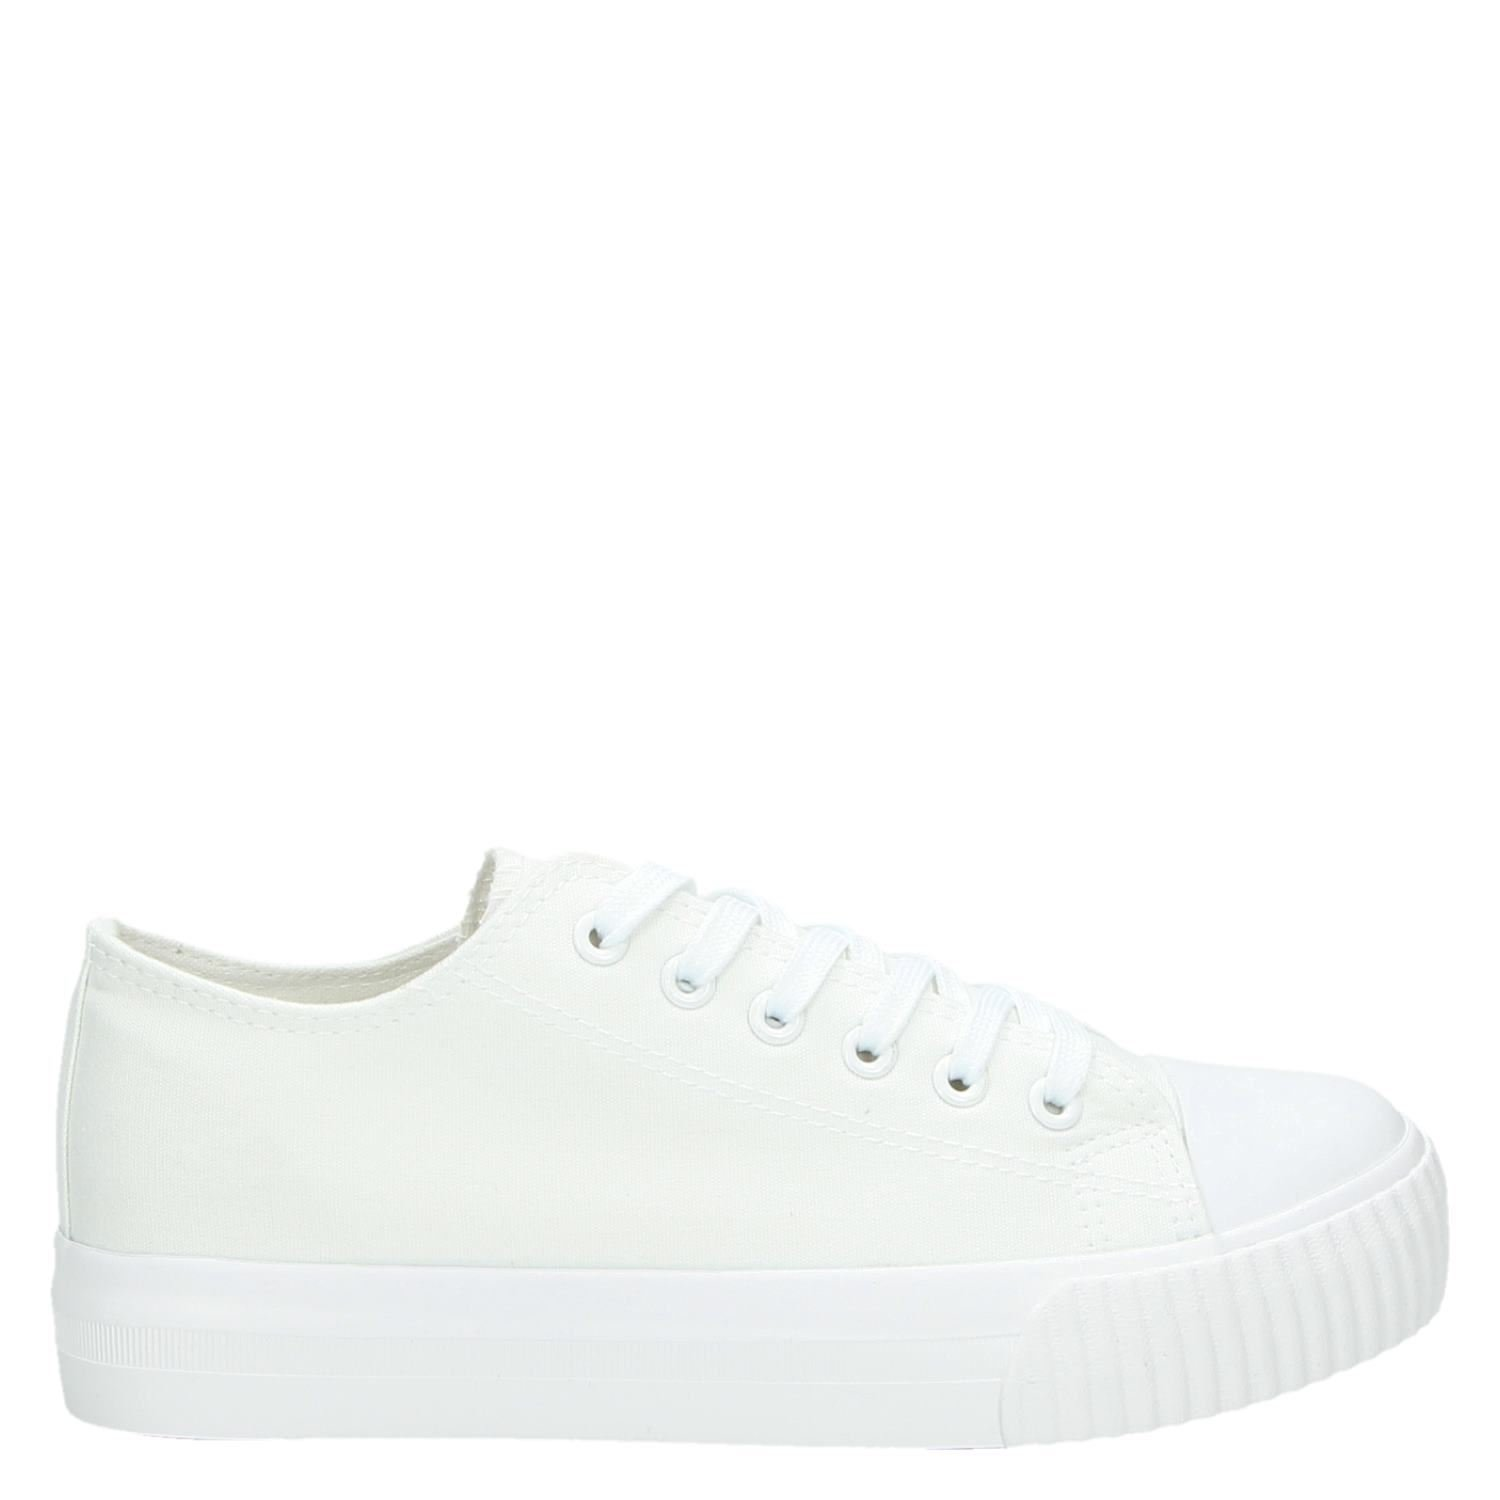 - Claudia Ghizzani lage sneakers